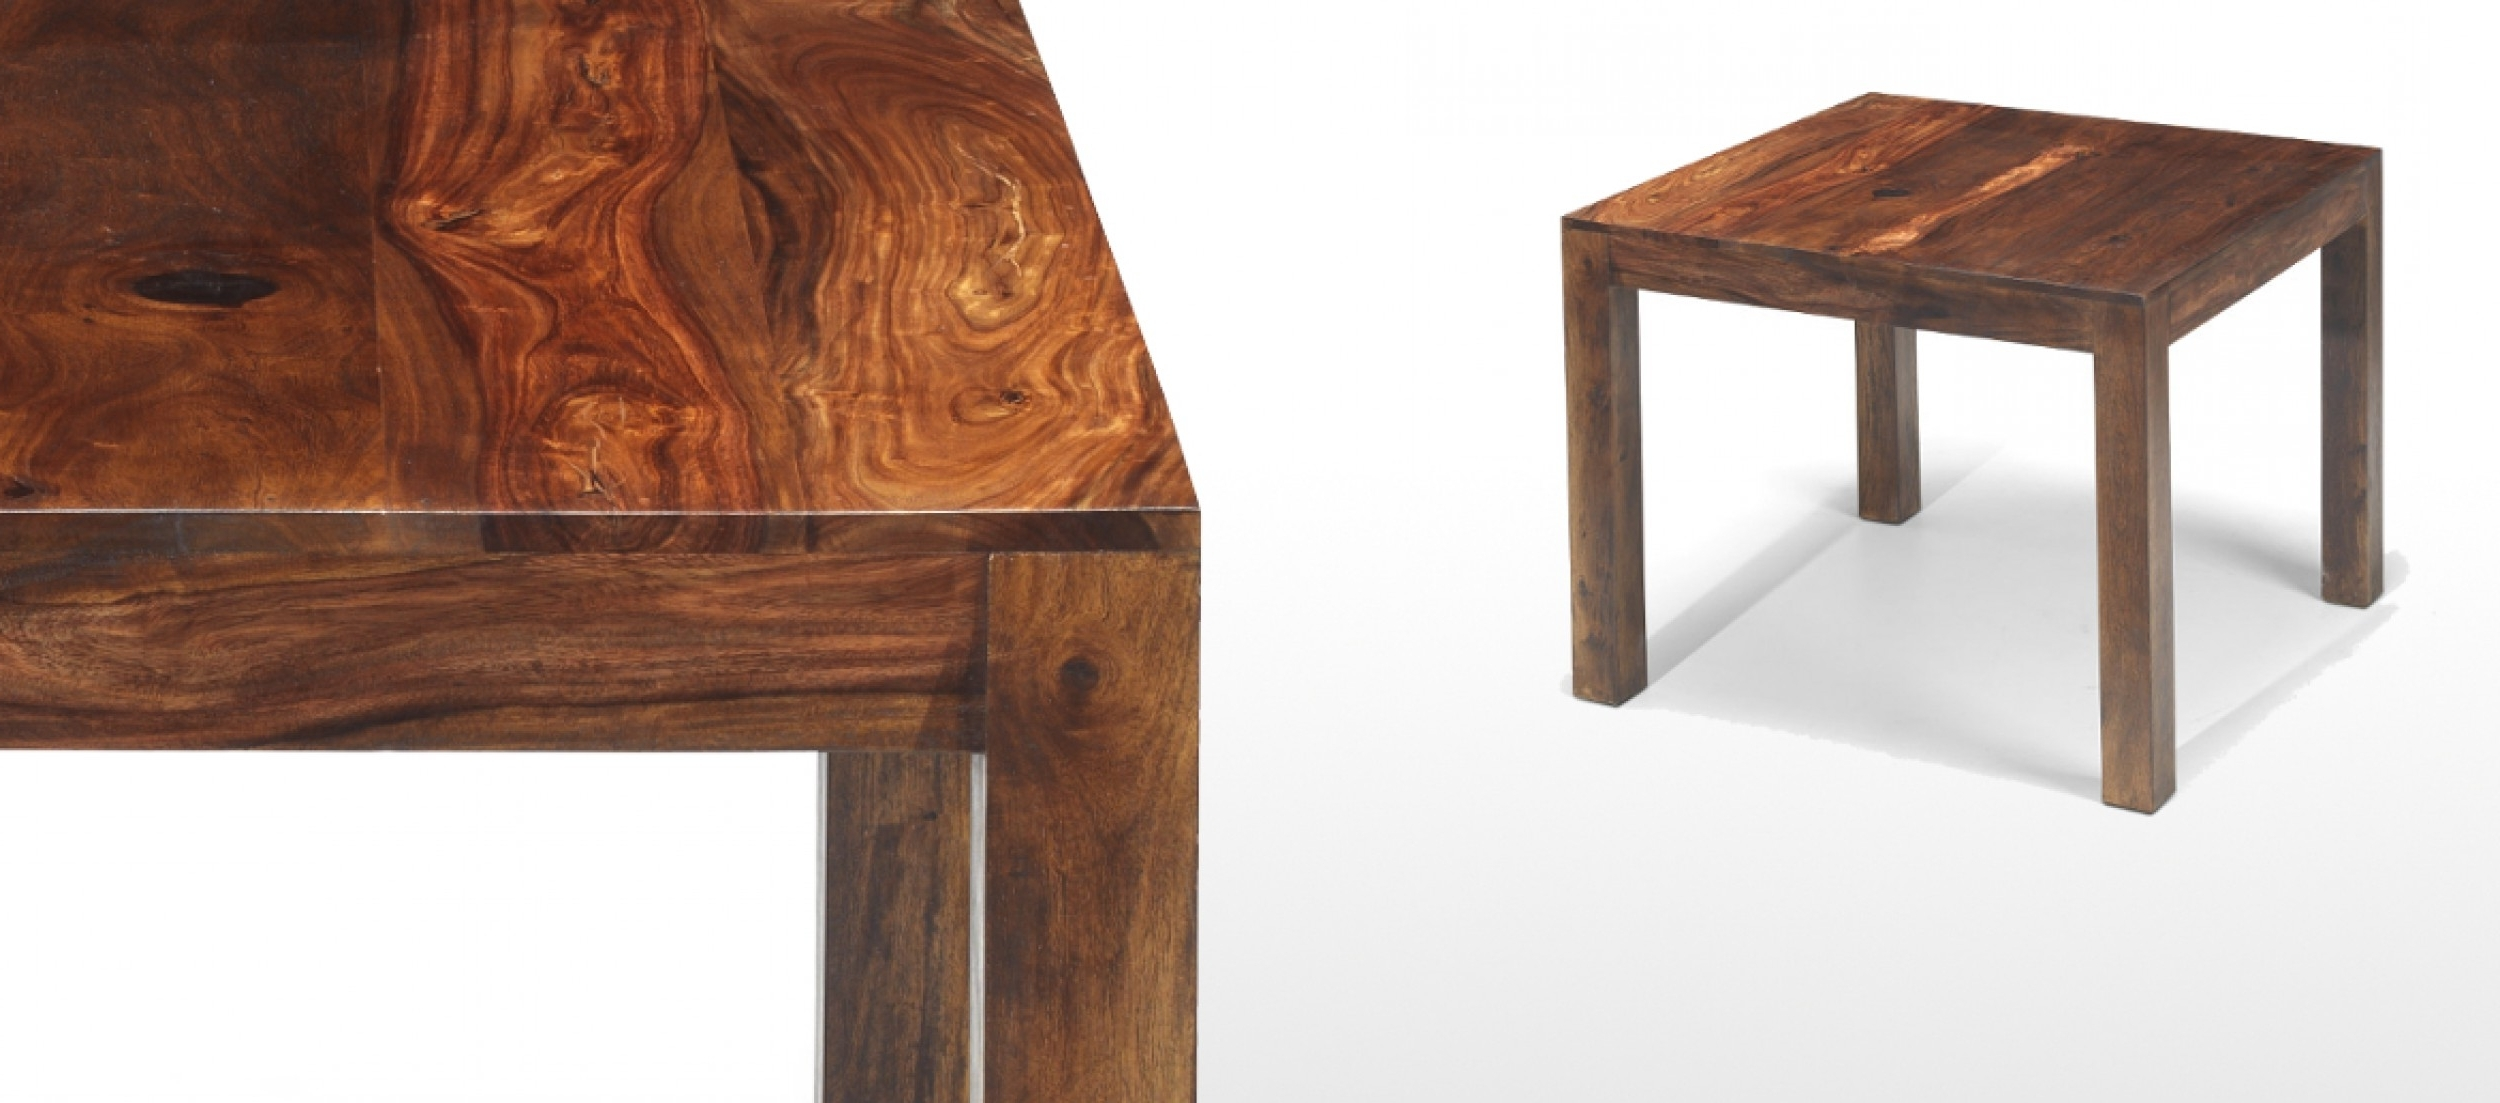 Quercus Living In Recent Sheesham Dining Tables (Gallery 11 of 25)